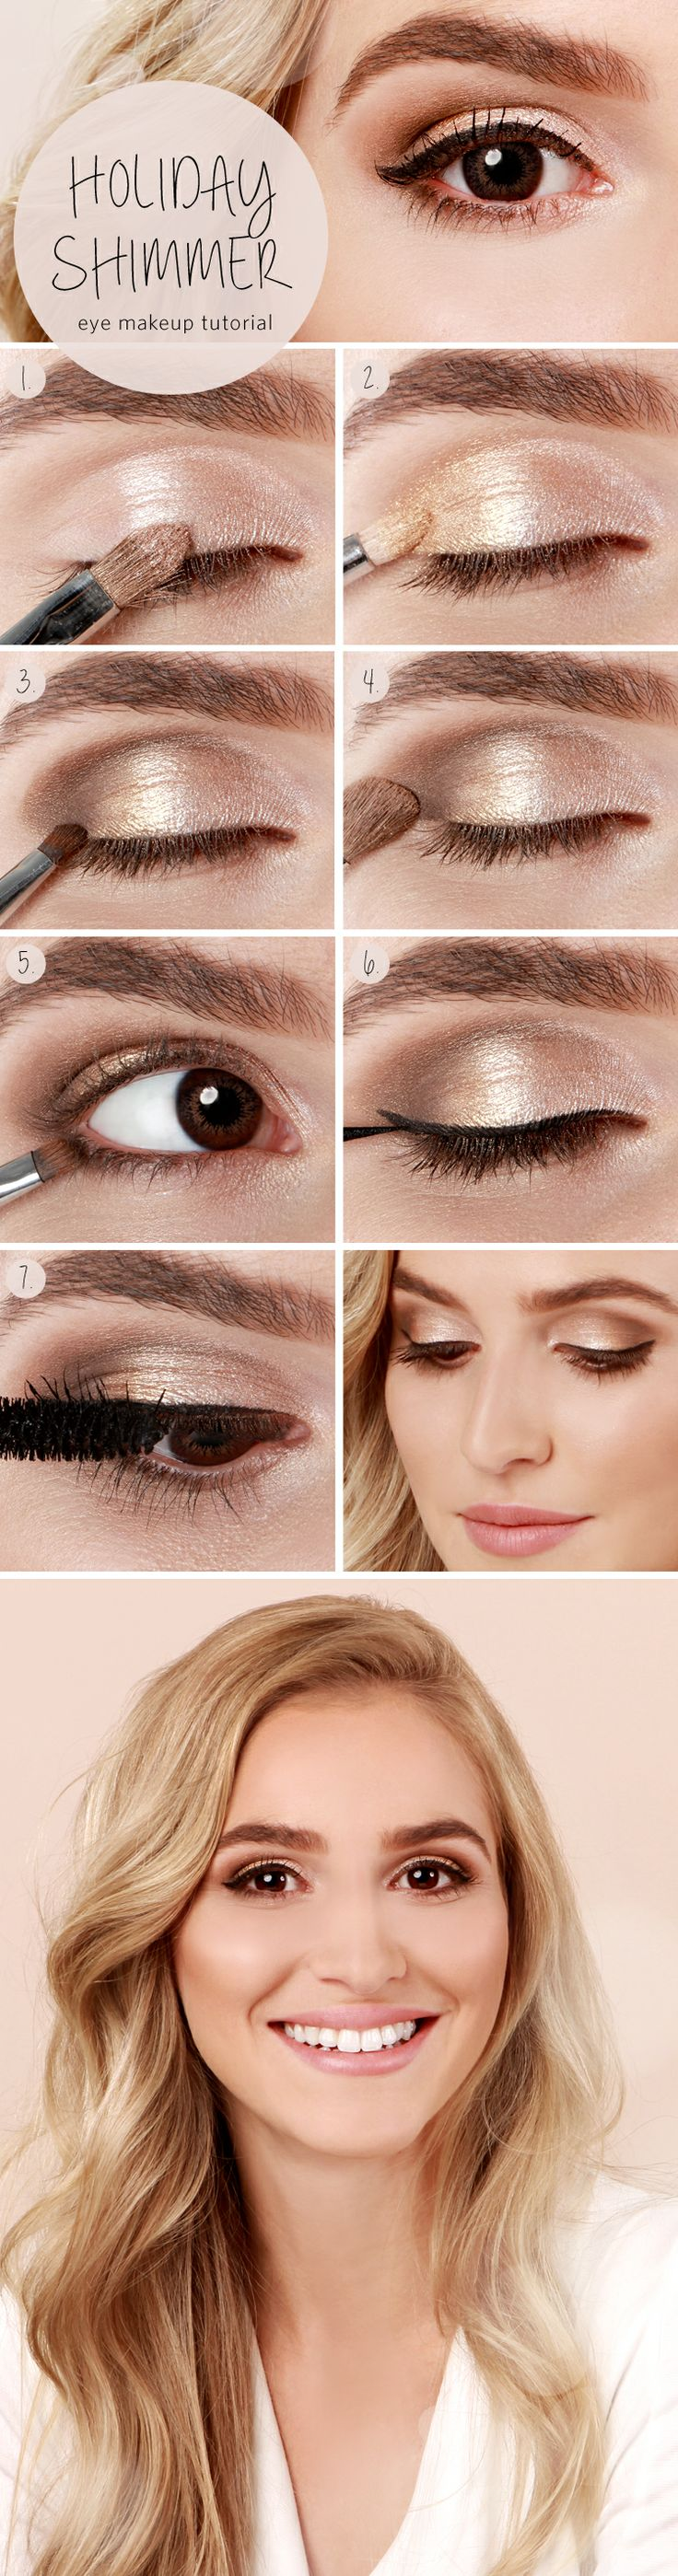 Shimmery Holiday Eye Makeup